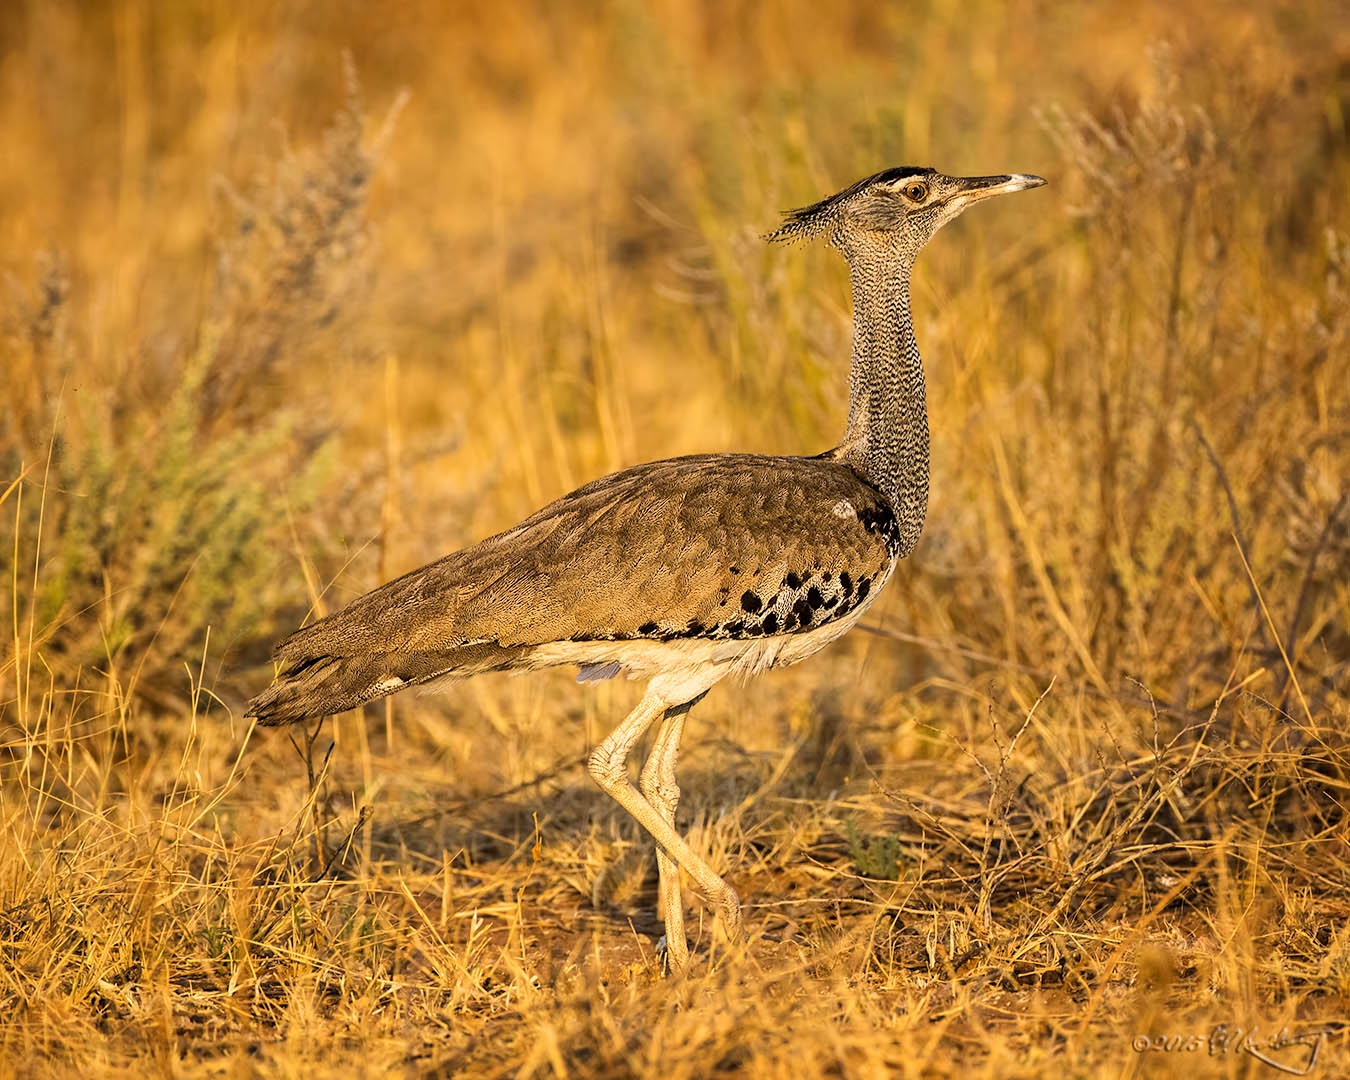 Kori_Bustard_in_golden-hour_light